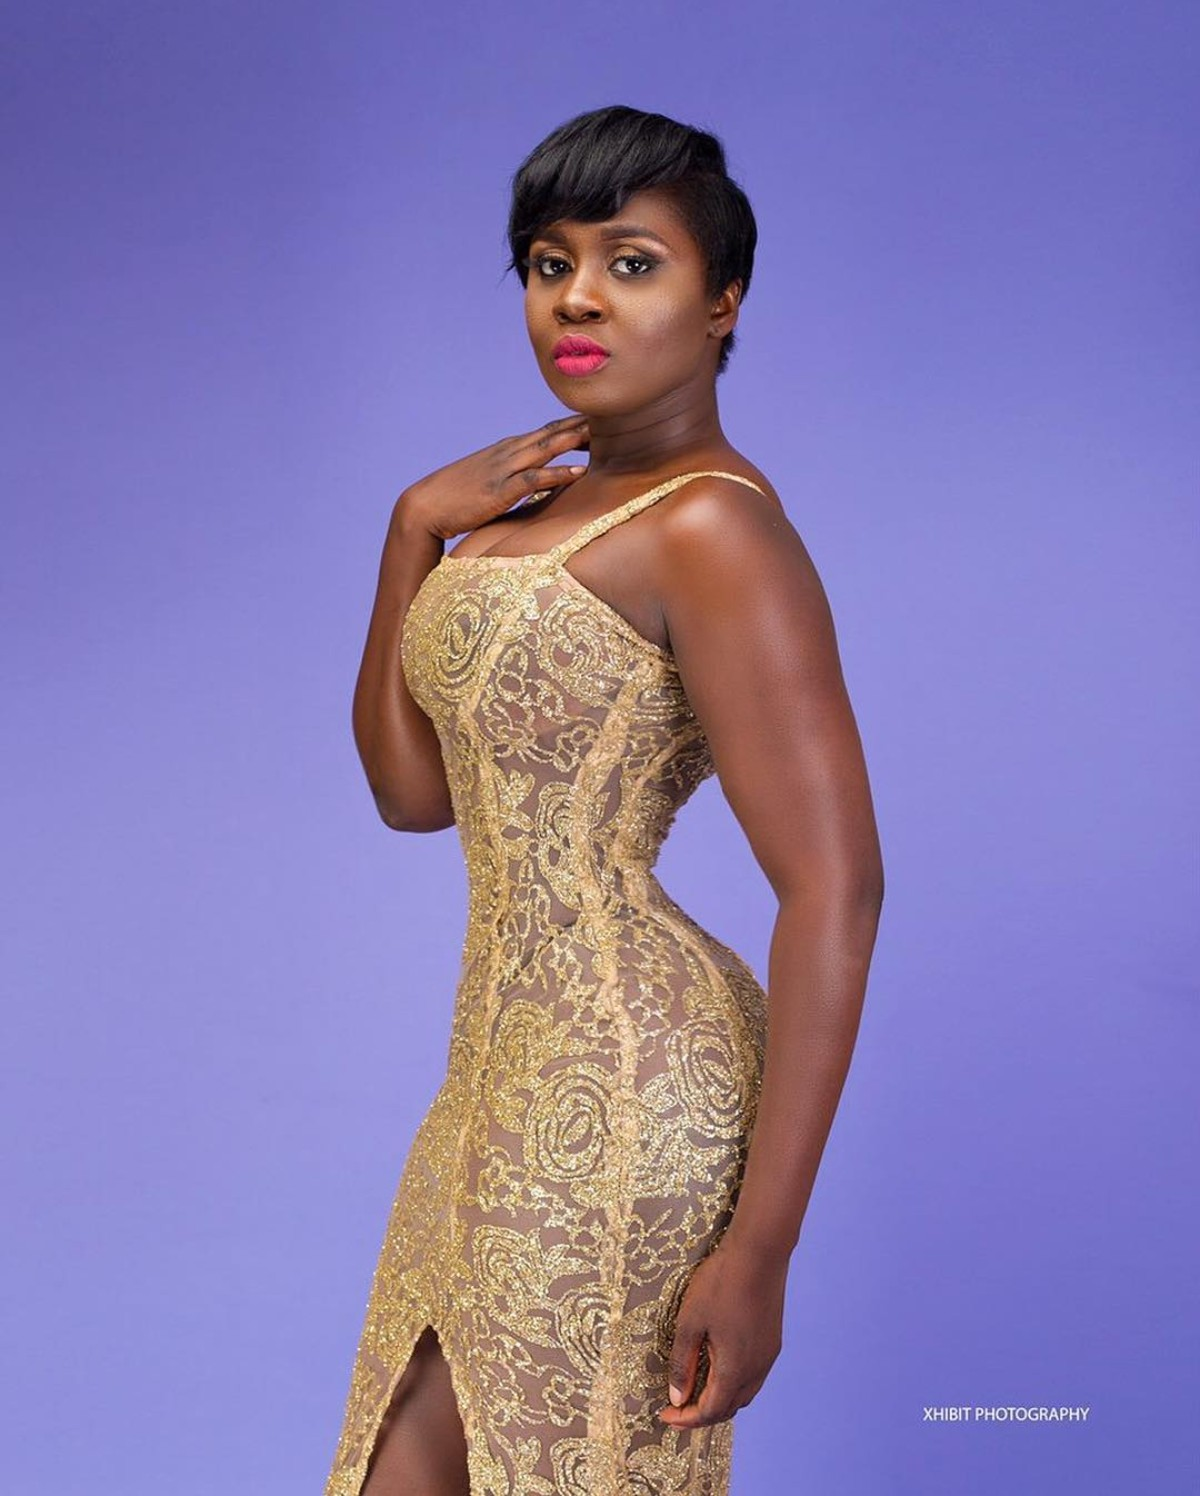 I Still Believe In Falling In Love And Going On Dates Princess Shyngle Says (2)